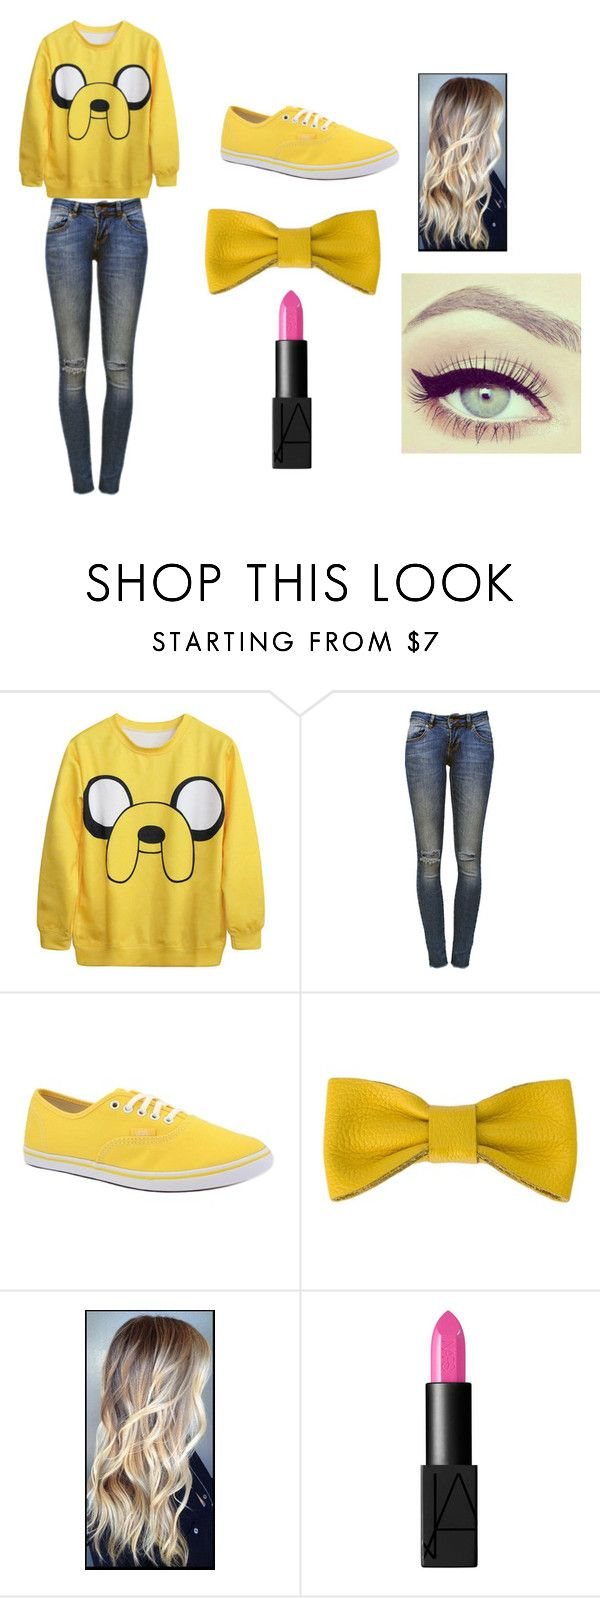 """Jake the dog"" by acx-madii ❤ liked on Polyvore featuring Anine Bing, Vans and NARS Cosmetics"